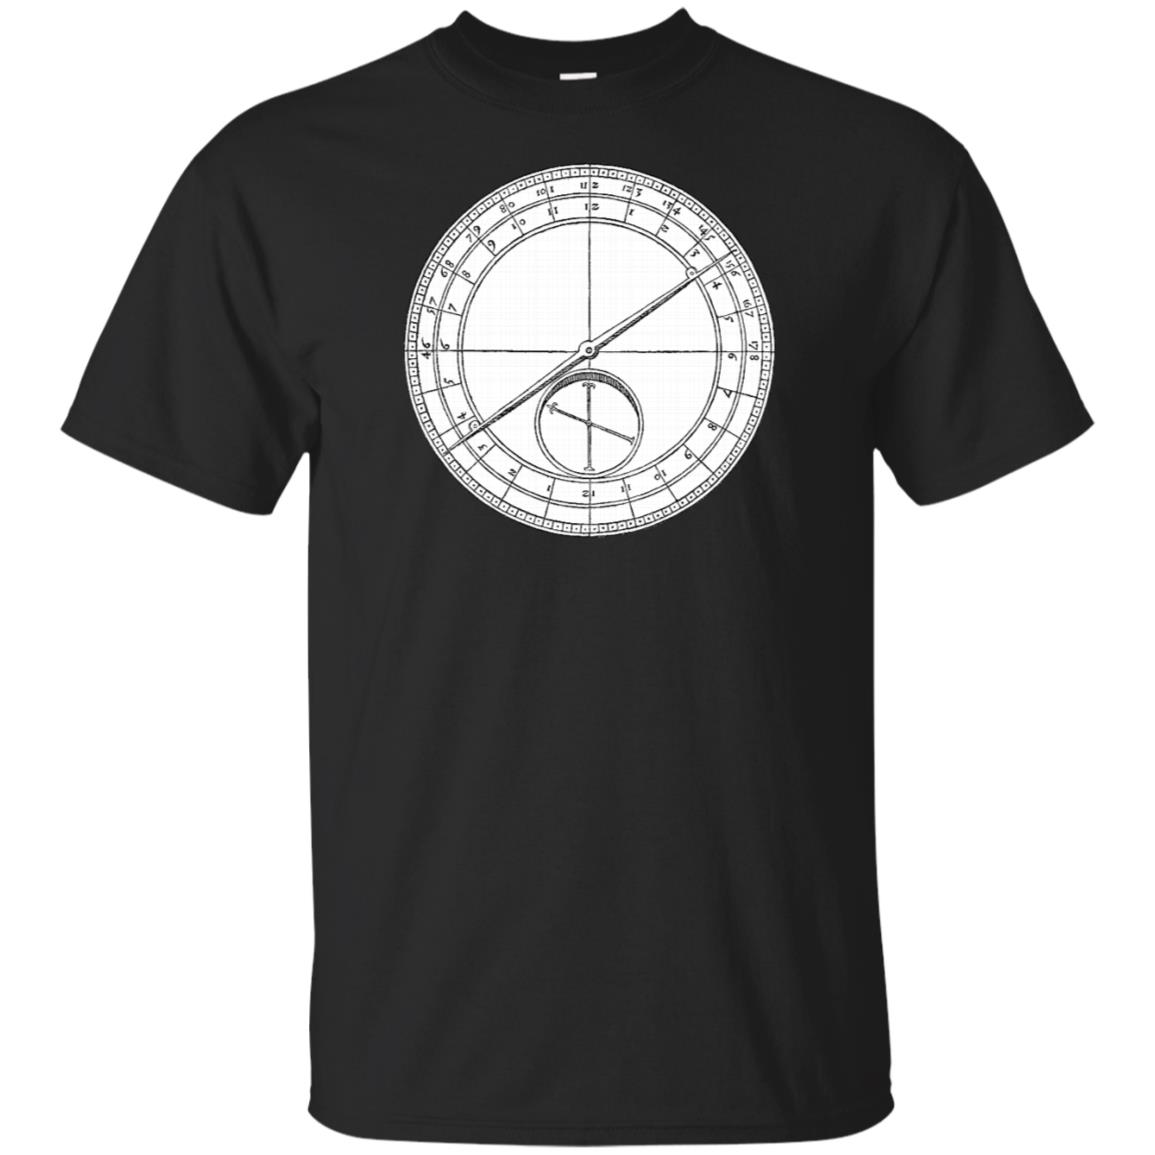 Vintage Surveyor Instrument Funny Retro Unisex Short Sleeve